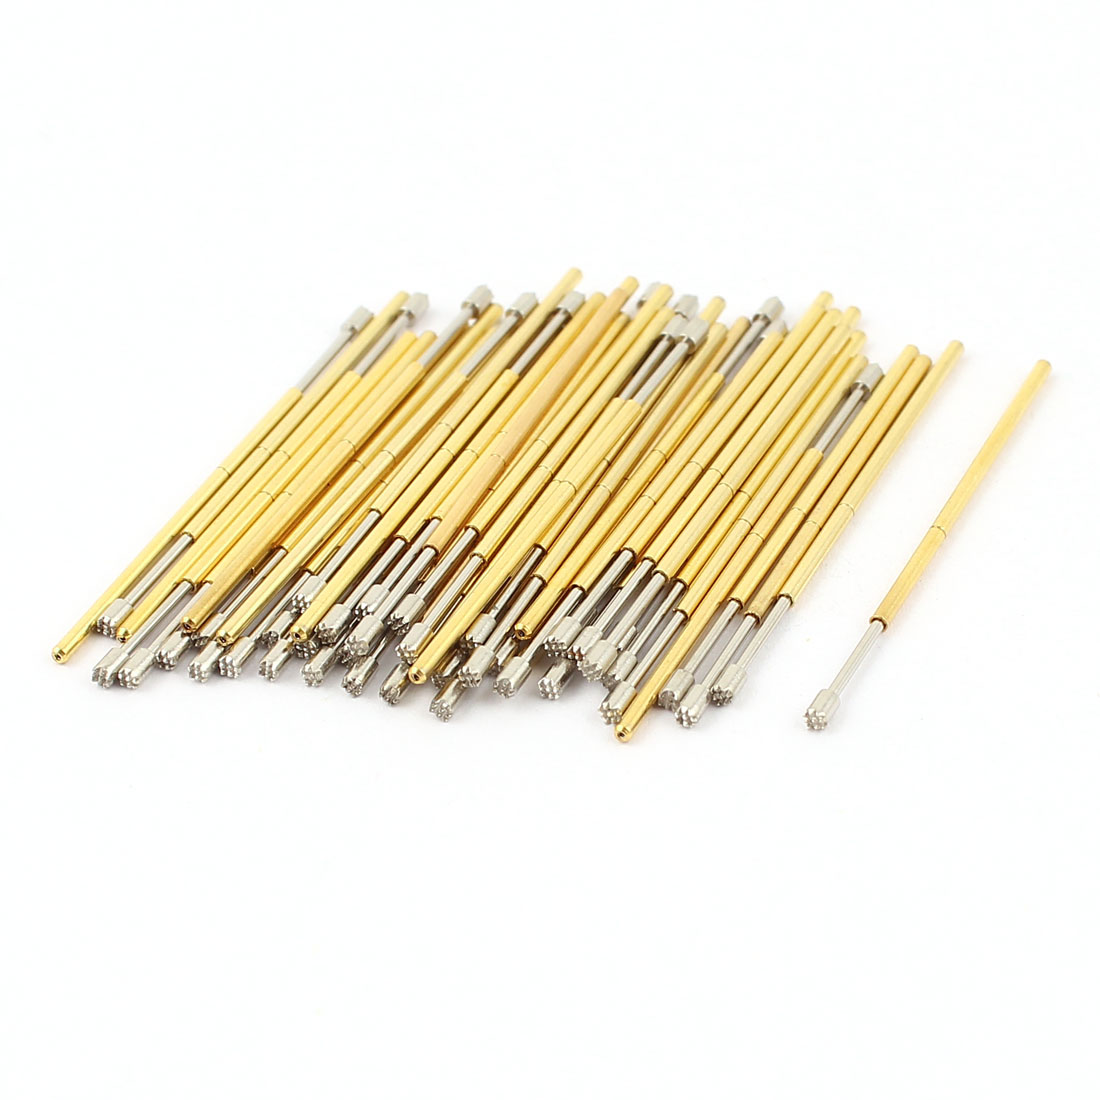 50 Pcs PL75-H 1.3mm 9-Point Crown Tip Spring Testing Probes Pin